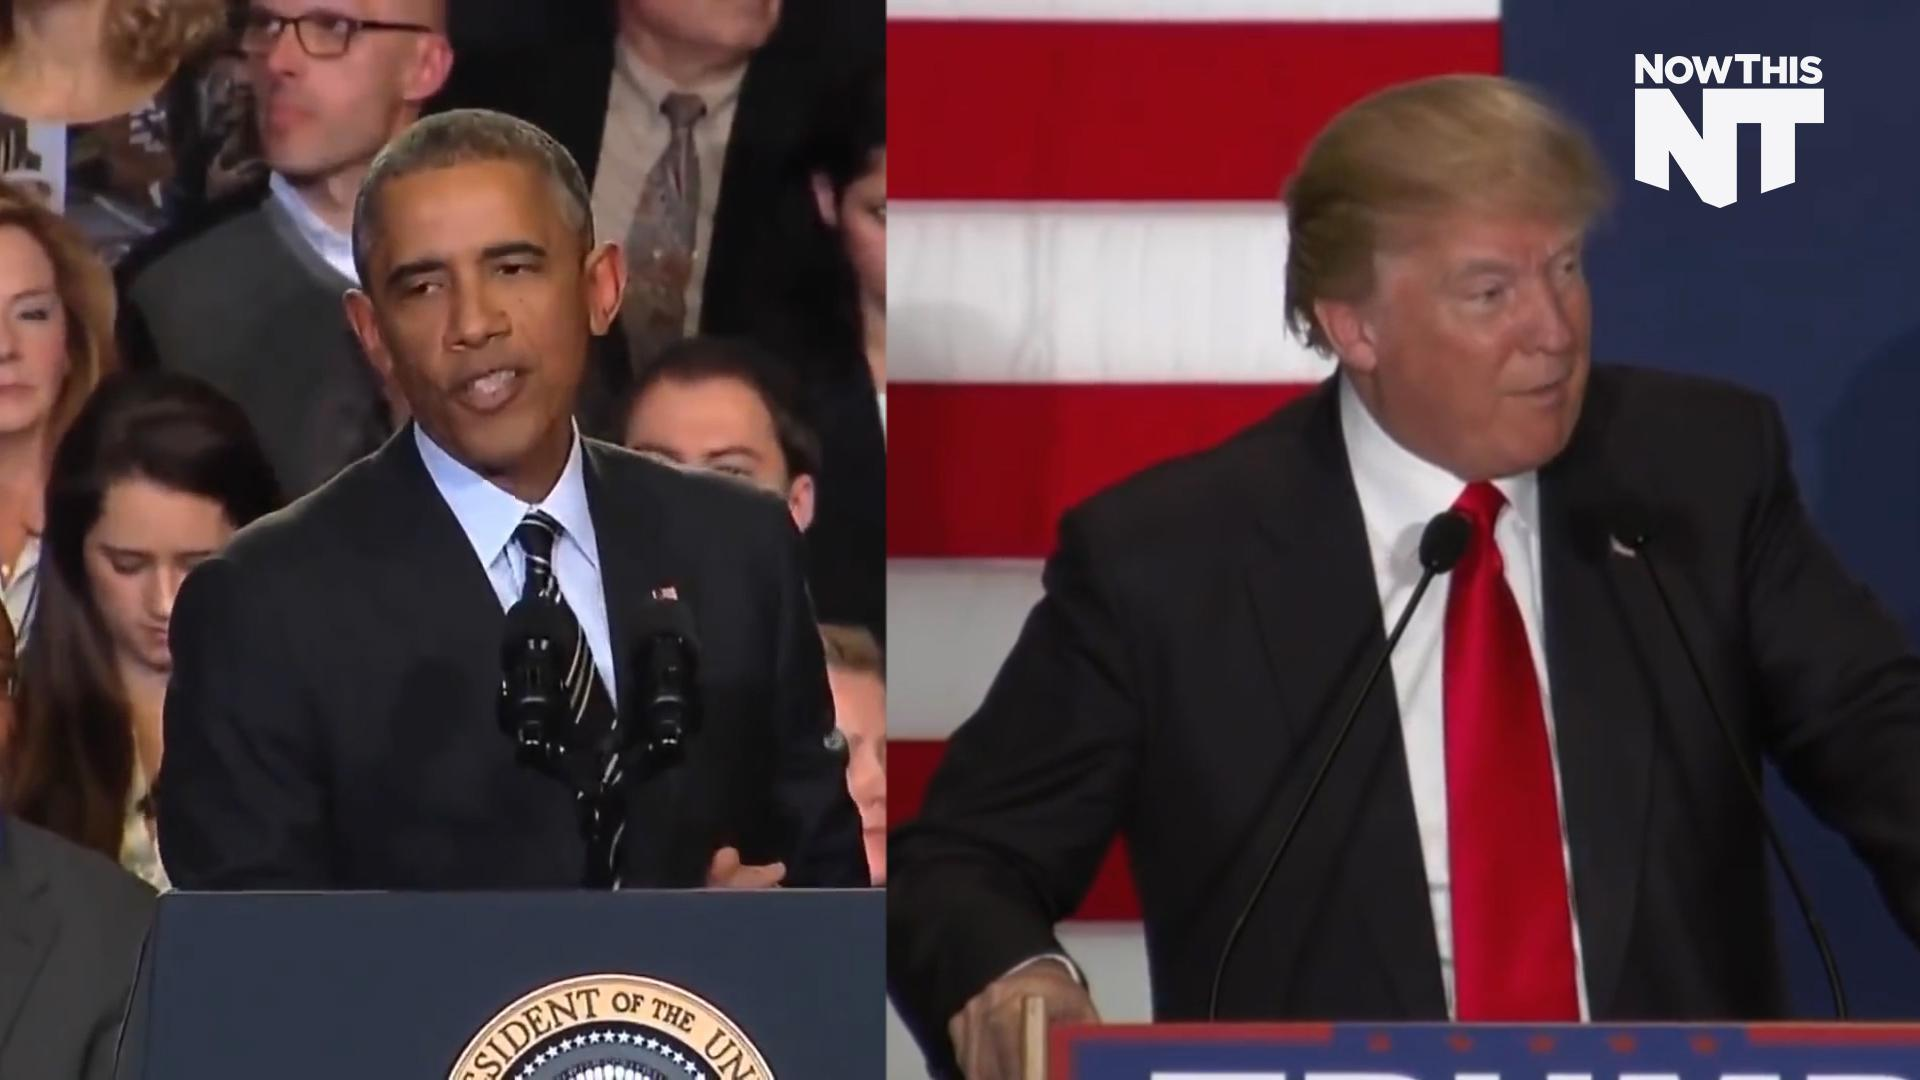 Obama's Response To Hecklers Vs. Trump